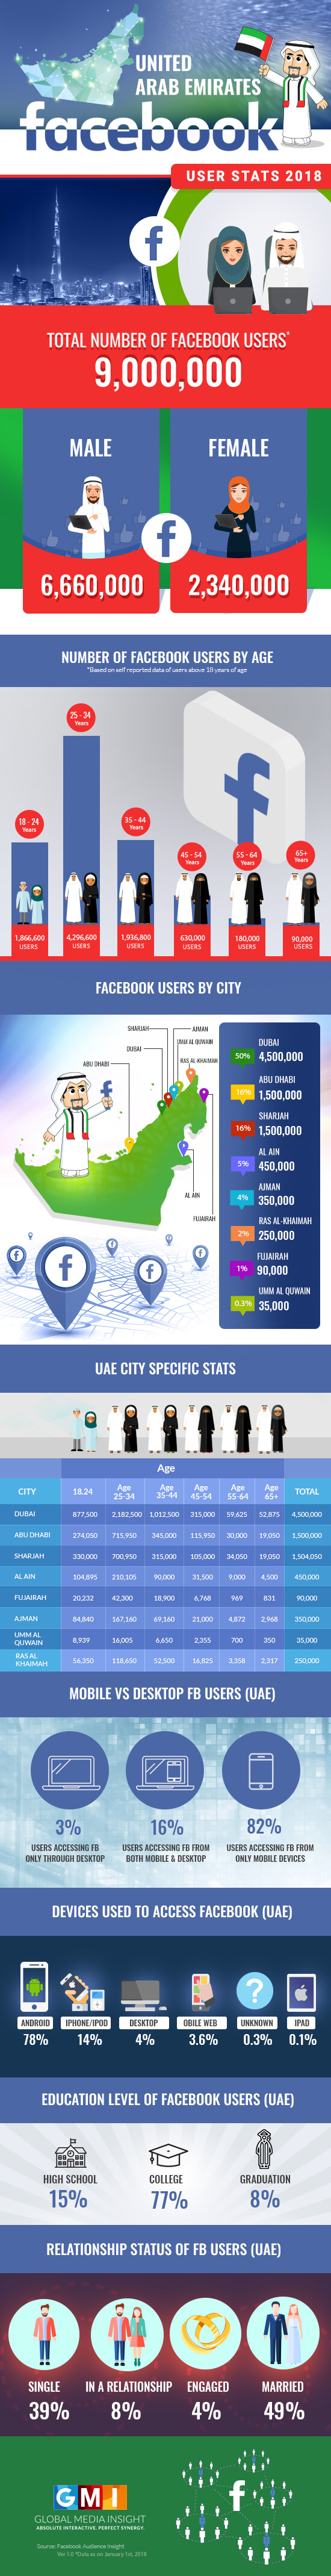 UAE Facebook Usage Statistics: 2018 (Infographics)